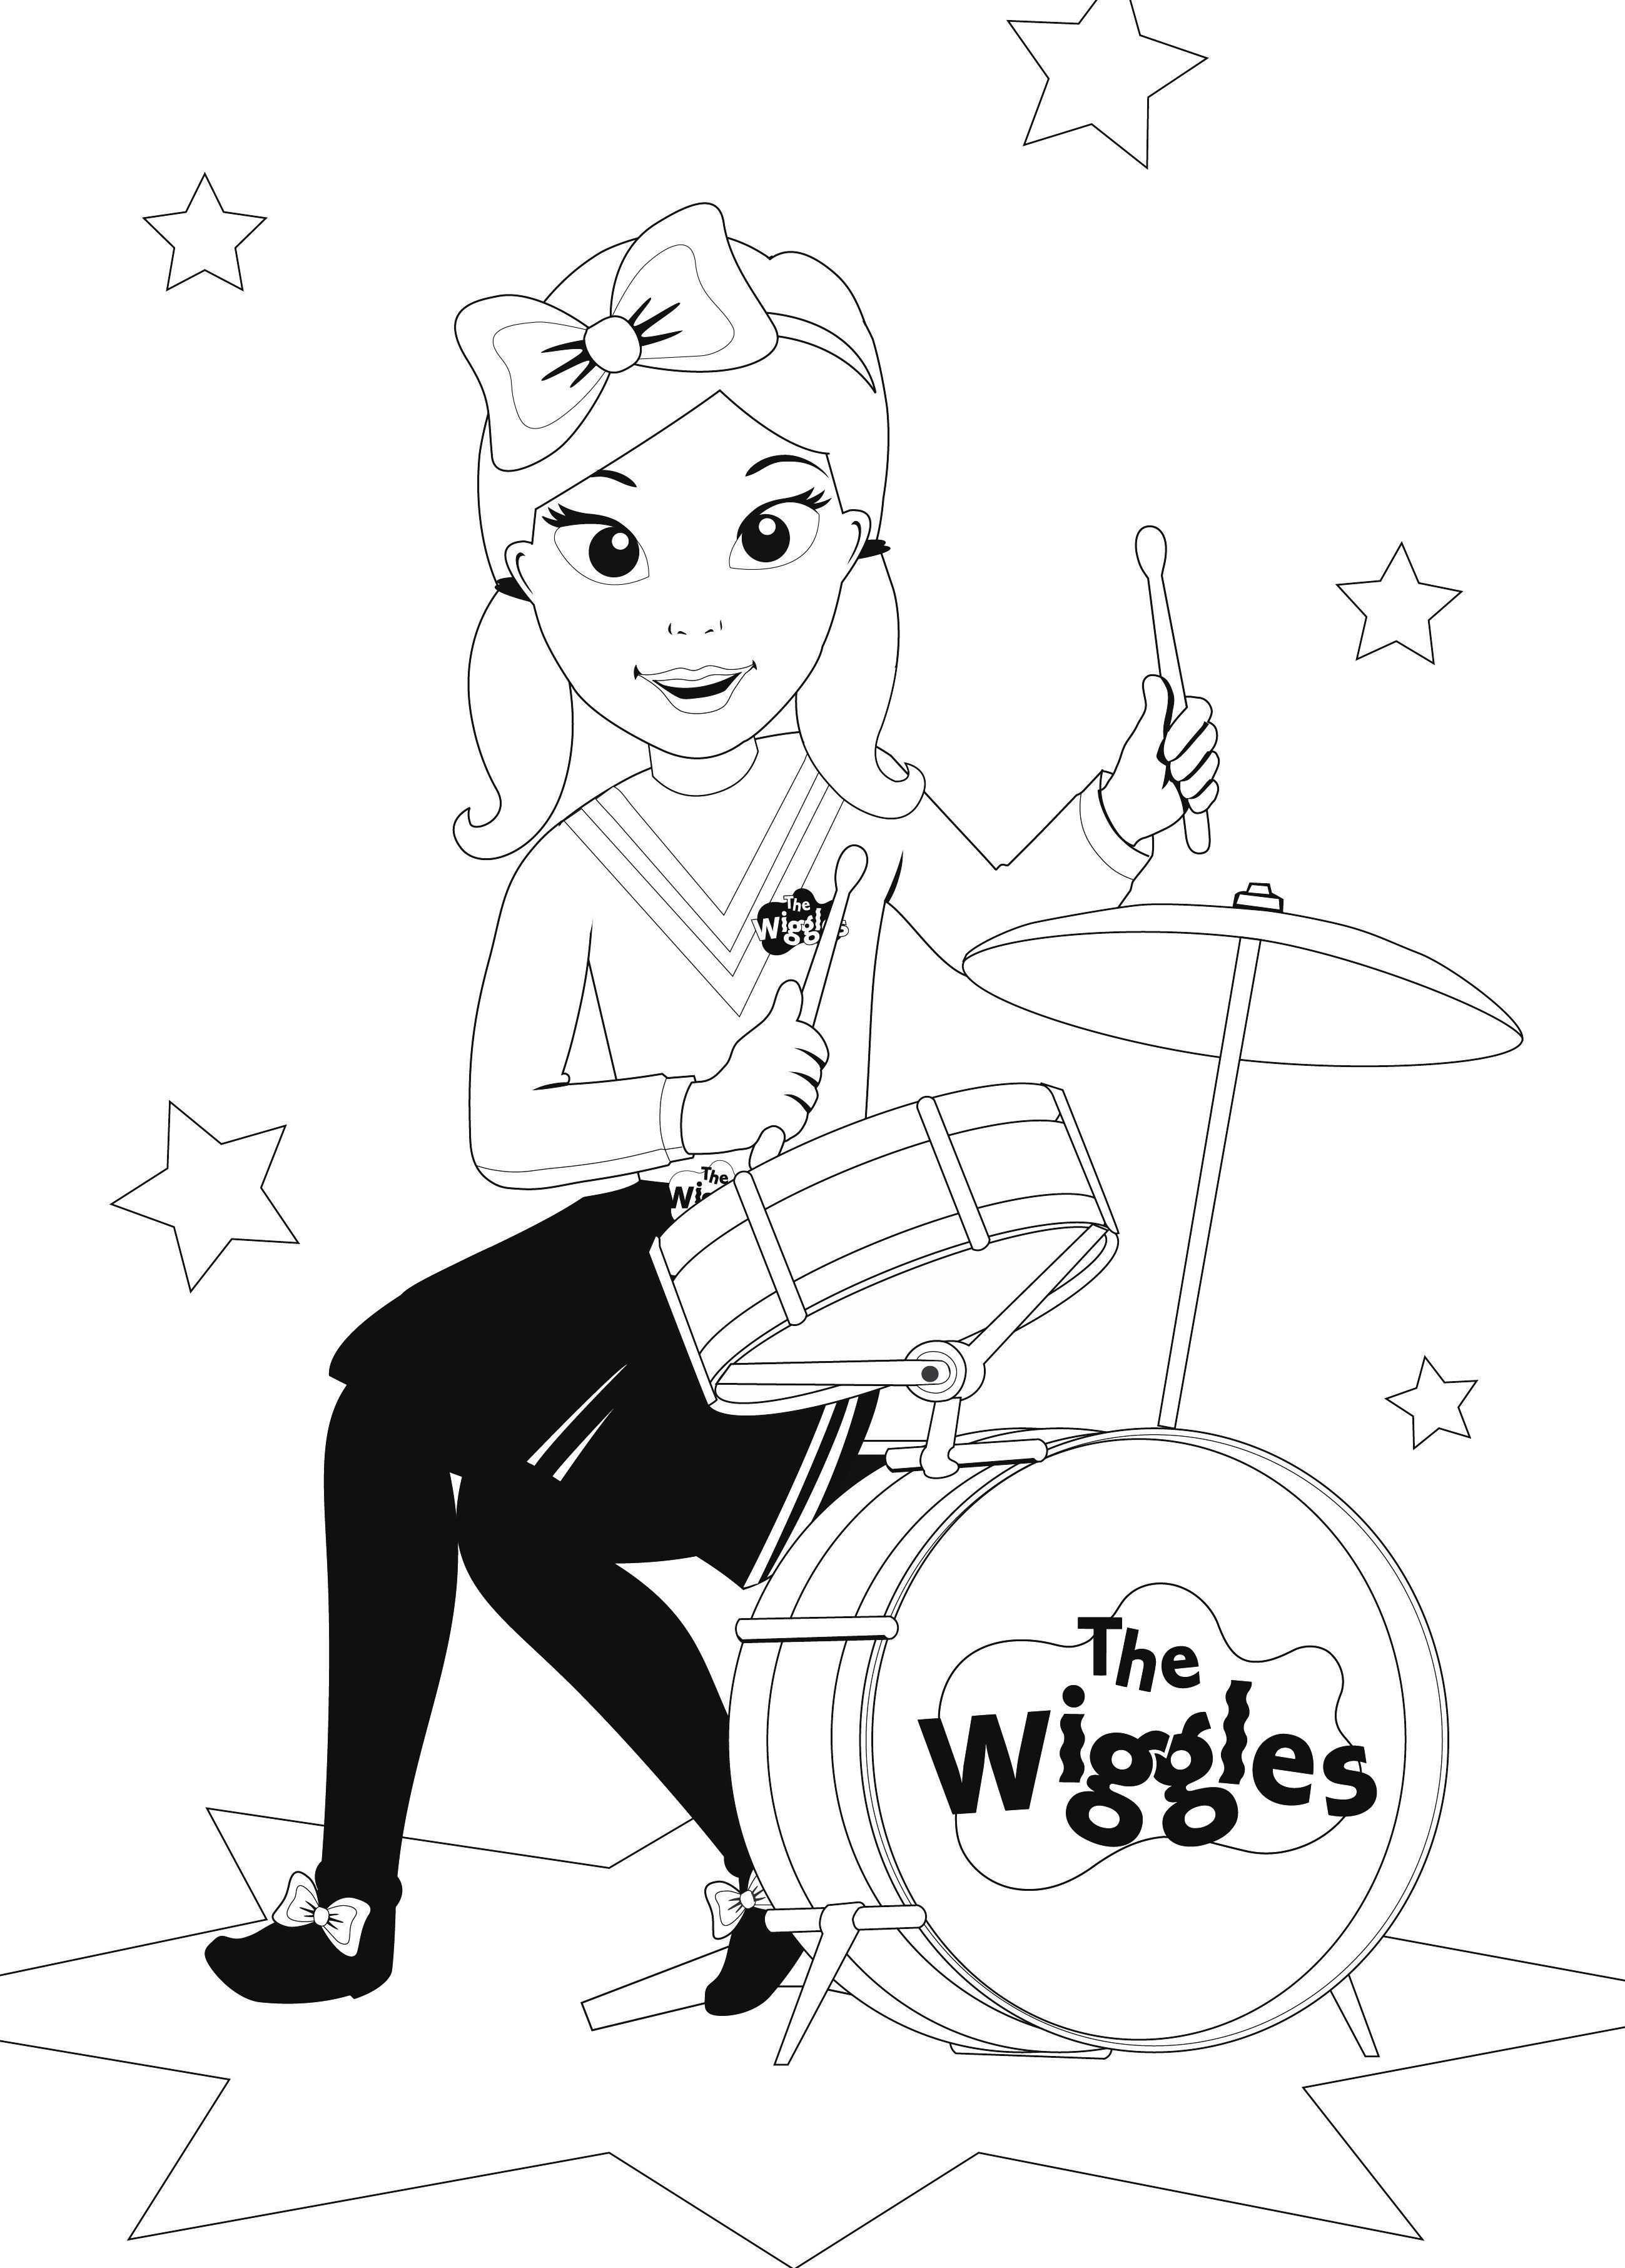 Pin By Tamsin Van Rooyen On Wiggles The Wiggles Birthday Wiggles Party Emma Wiggle